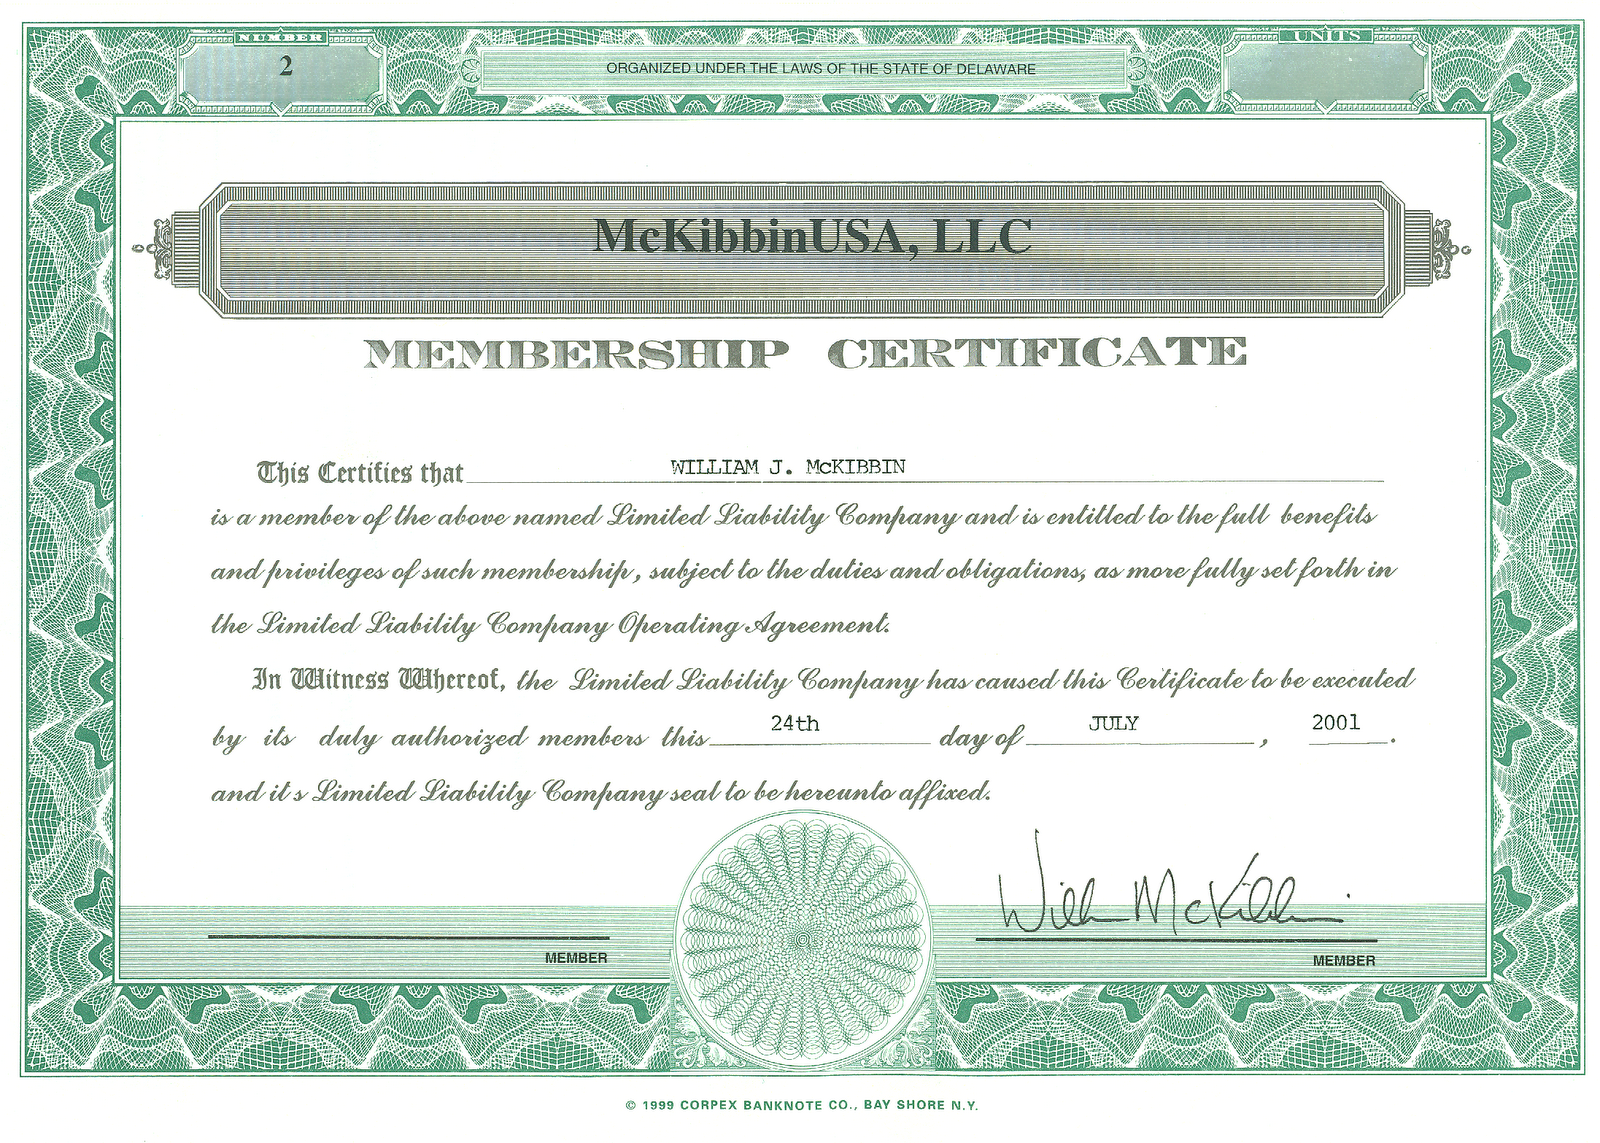 llc membership certificate template the vantage point the best investment ever